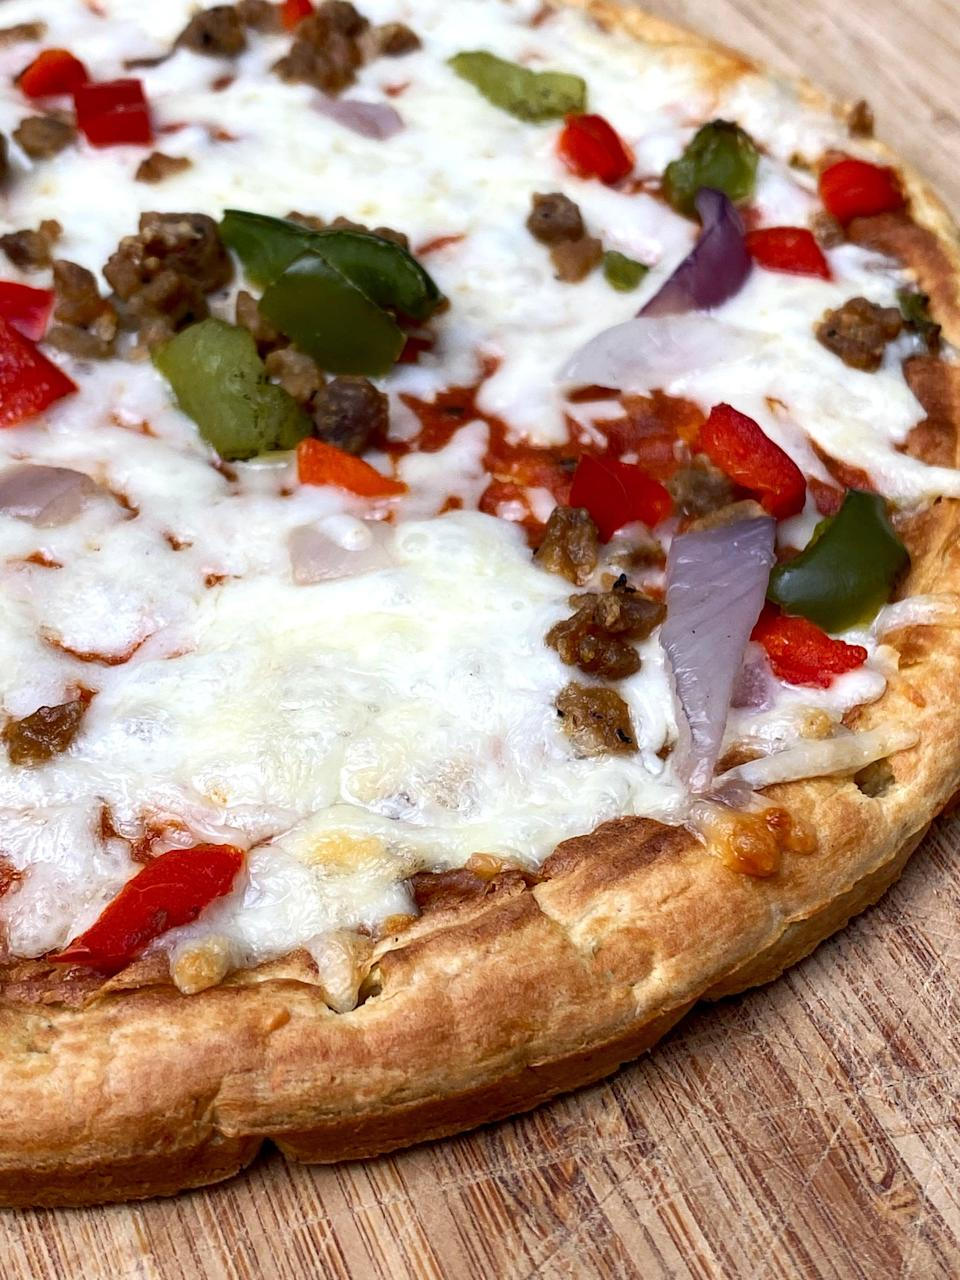 <p>When I tried a bite of the Banza Supreme pizza, (before I realized it wasn't vegan!), I liked the little spicy kick it had from the Beyond Meat sausage crumbles. Even my meat-eating husband couldn't tell it wasn't real meat. And again, the crust was yummy, chewy on the inside with a slightly crispy outside. This is just what you'd expect from a frozen pizza, but it's a great option for those looking to avoid meat.</p>